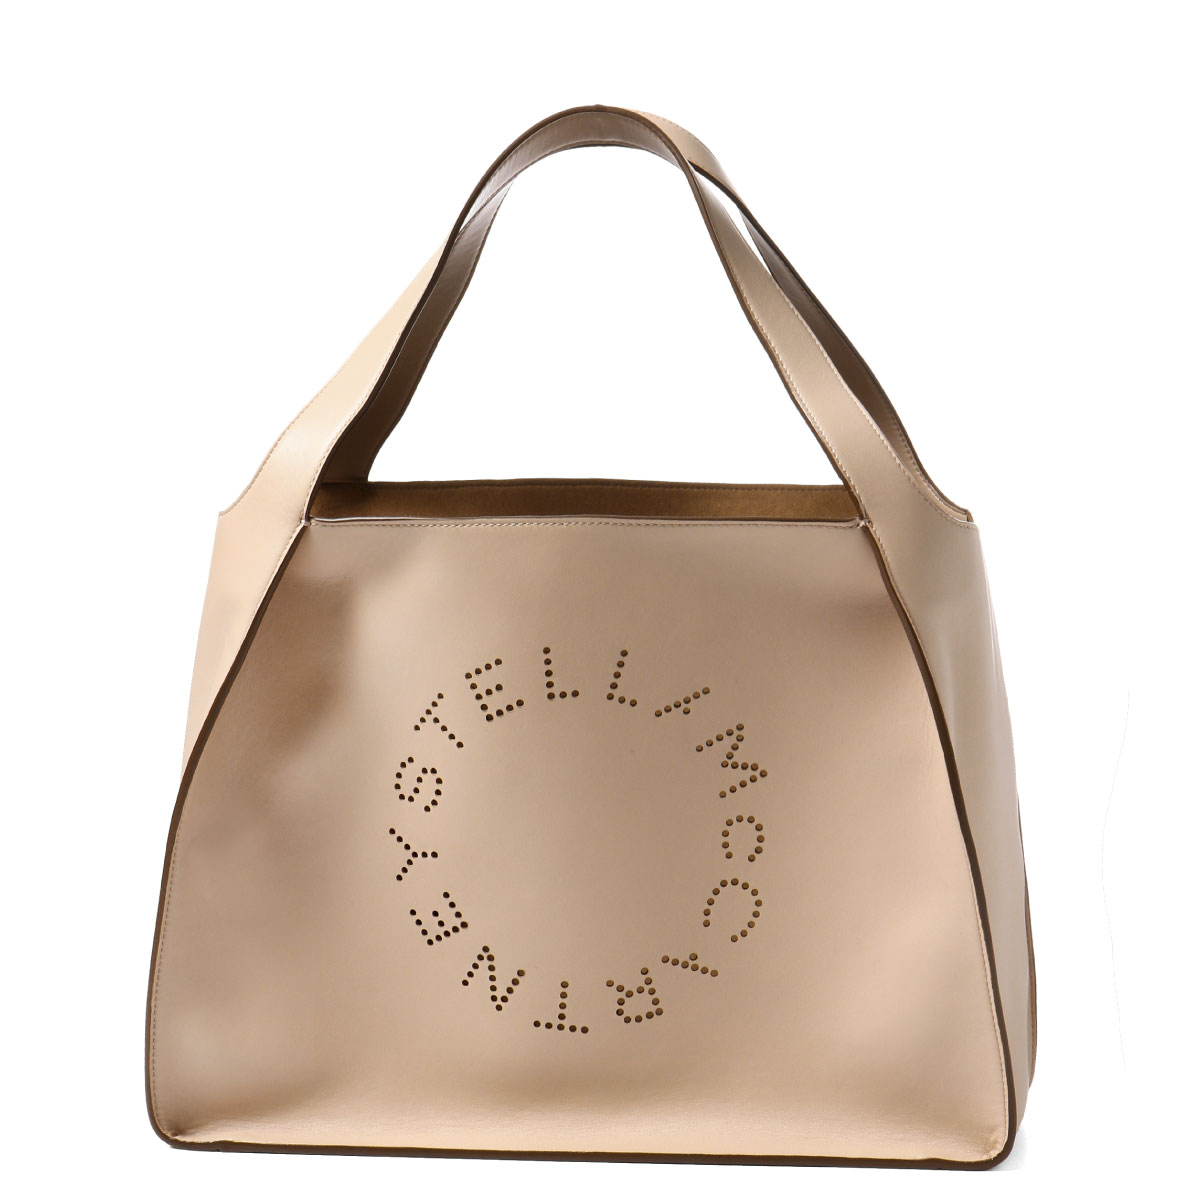 b0473e49d2 502793 Stella McCartney STELLA McCARTNEY bag lady W9923 6802 tote bag  POWDER beige